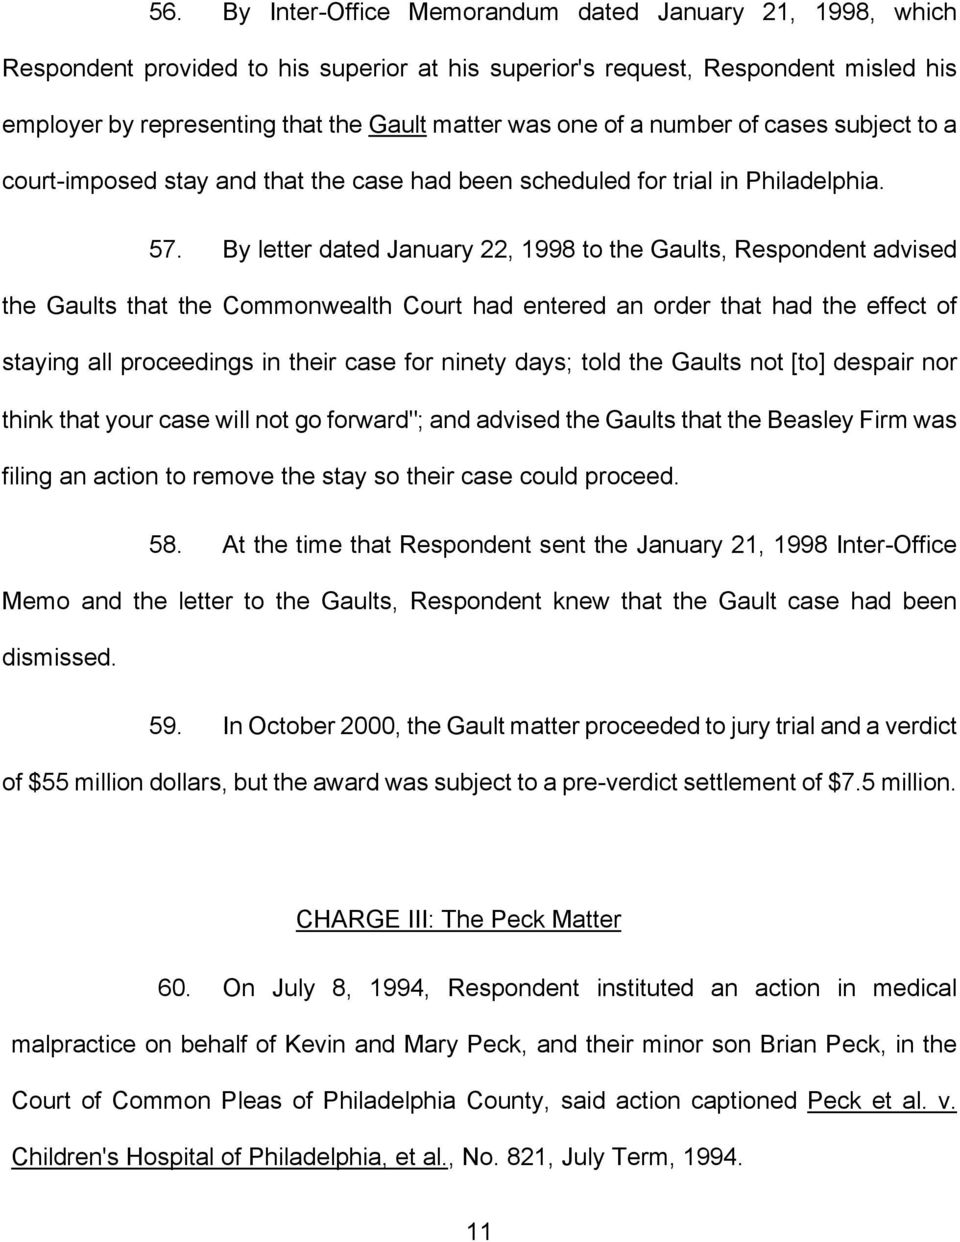 By letter dated January 22, 1998 to the Gaults, Respondent advised the Gaults that the Commonwealth Court had entered an order that had the effect of staying all proceedings in their case for ninety